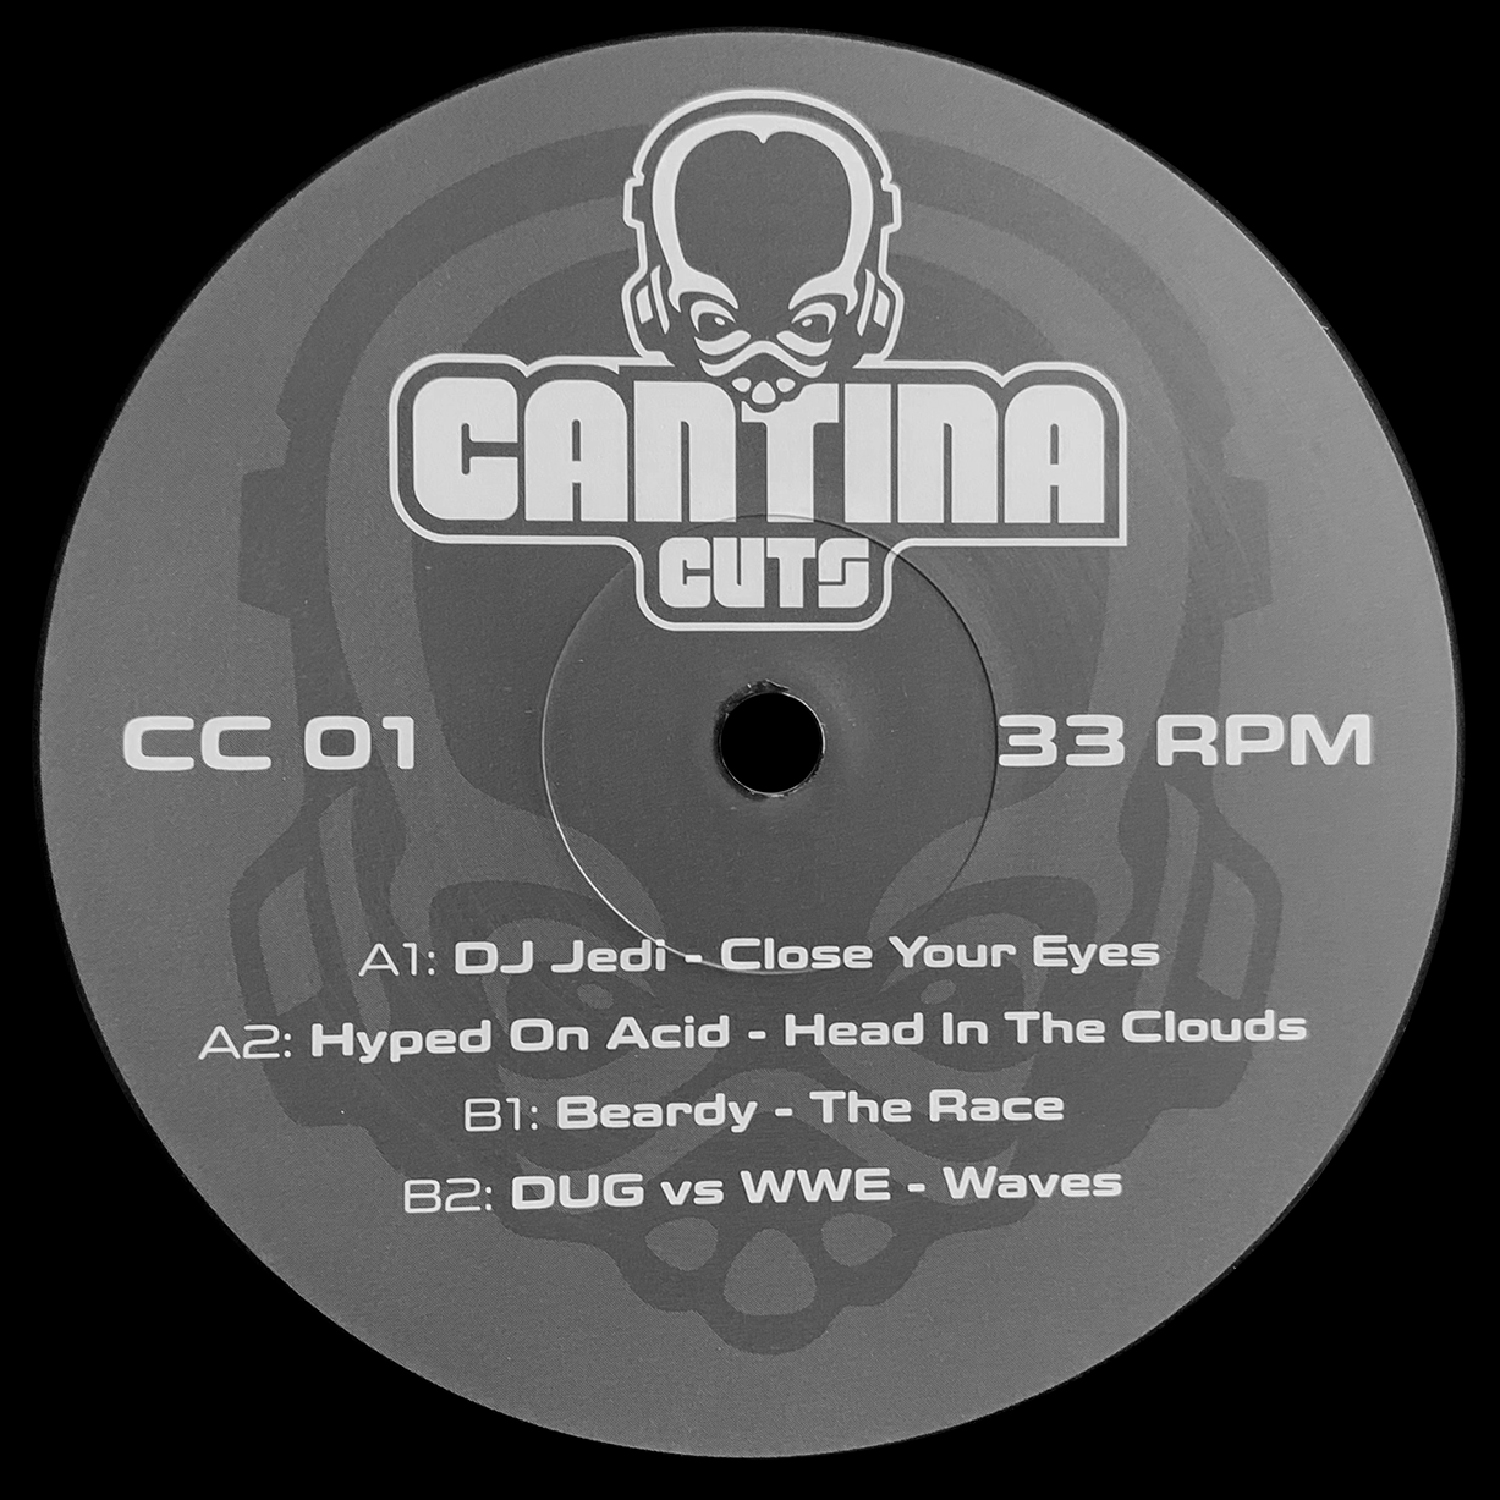 "[CC01] Various - Cantina Cuts 1 (12"" Vinyl + Digital)"